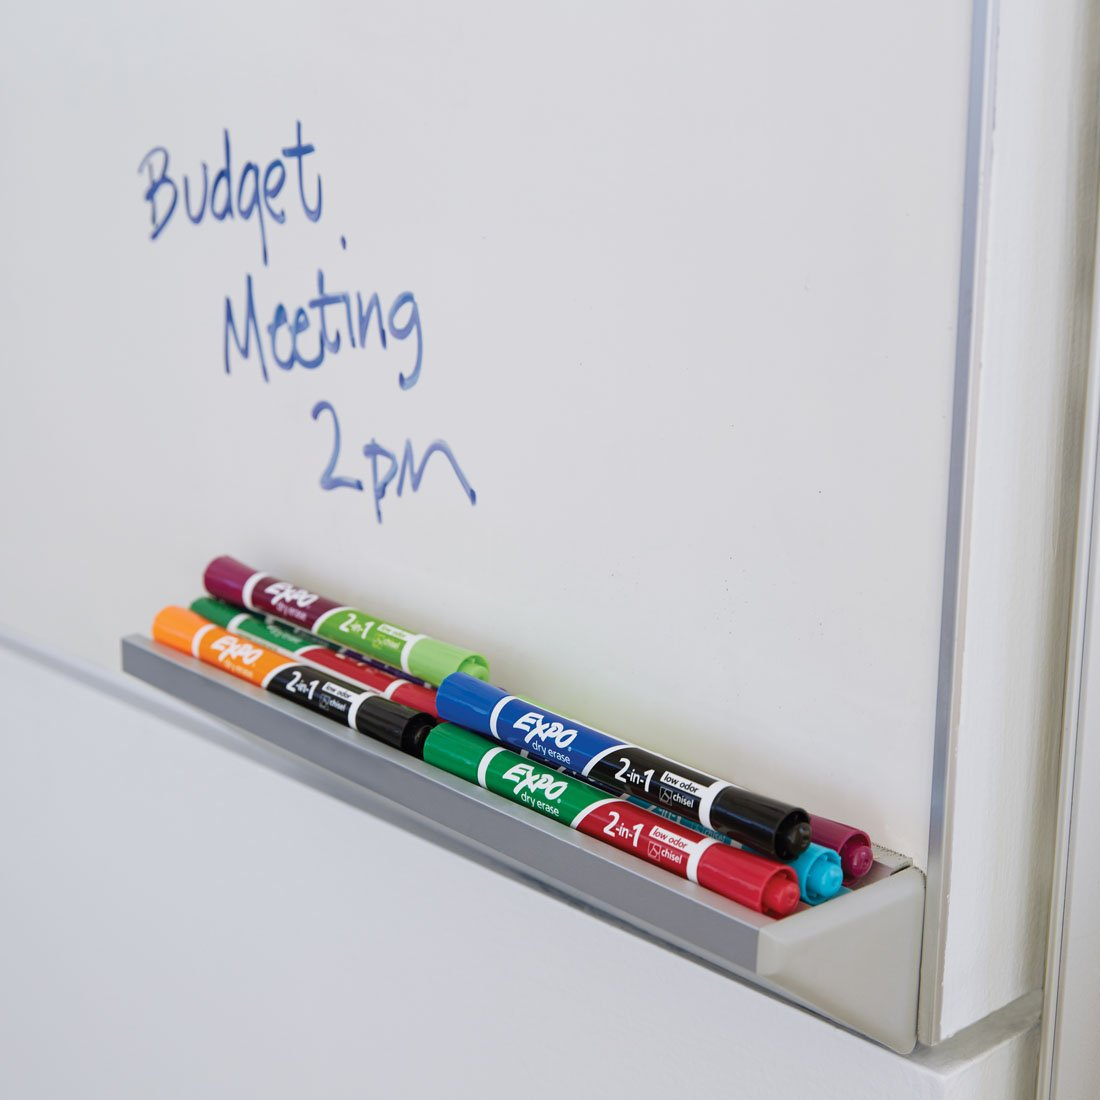 whiteboard-with-message-and-stacks-of-expo-2in1-markers.jpg